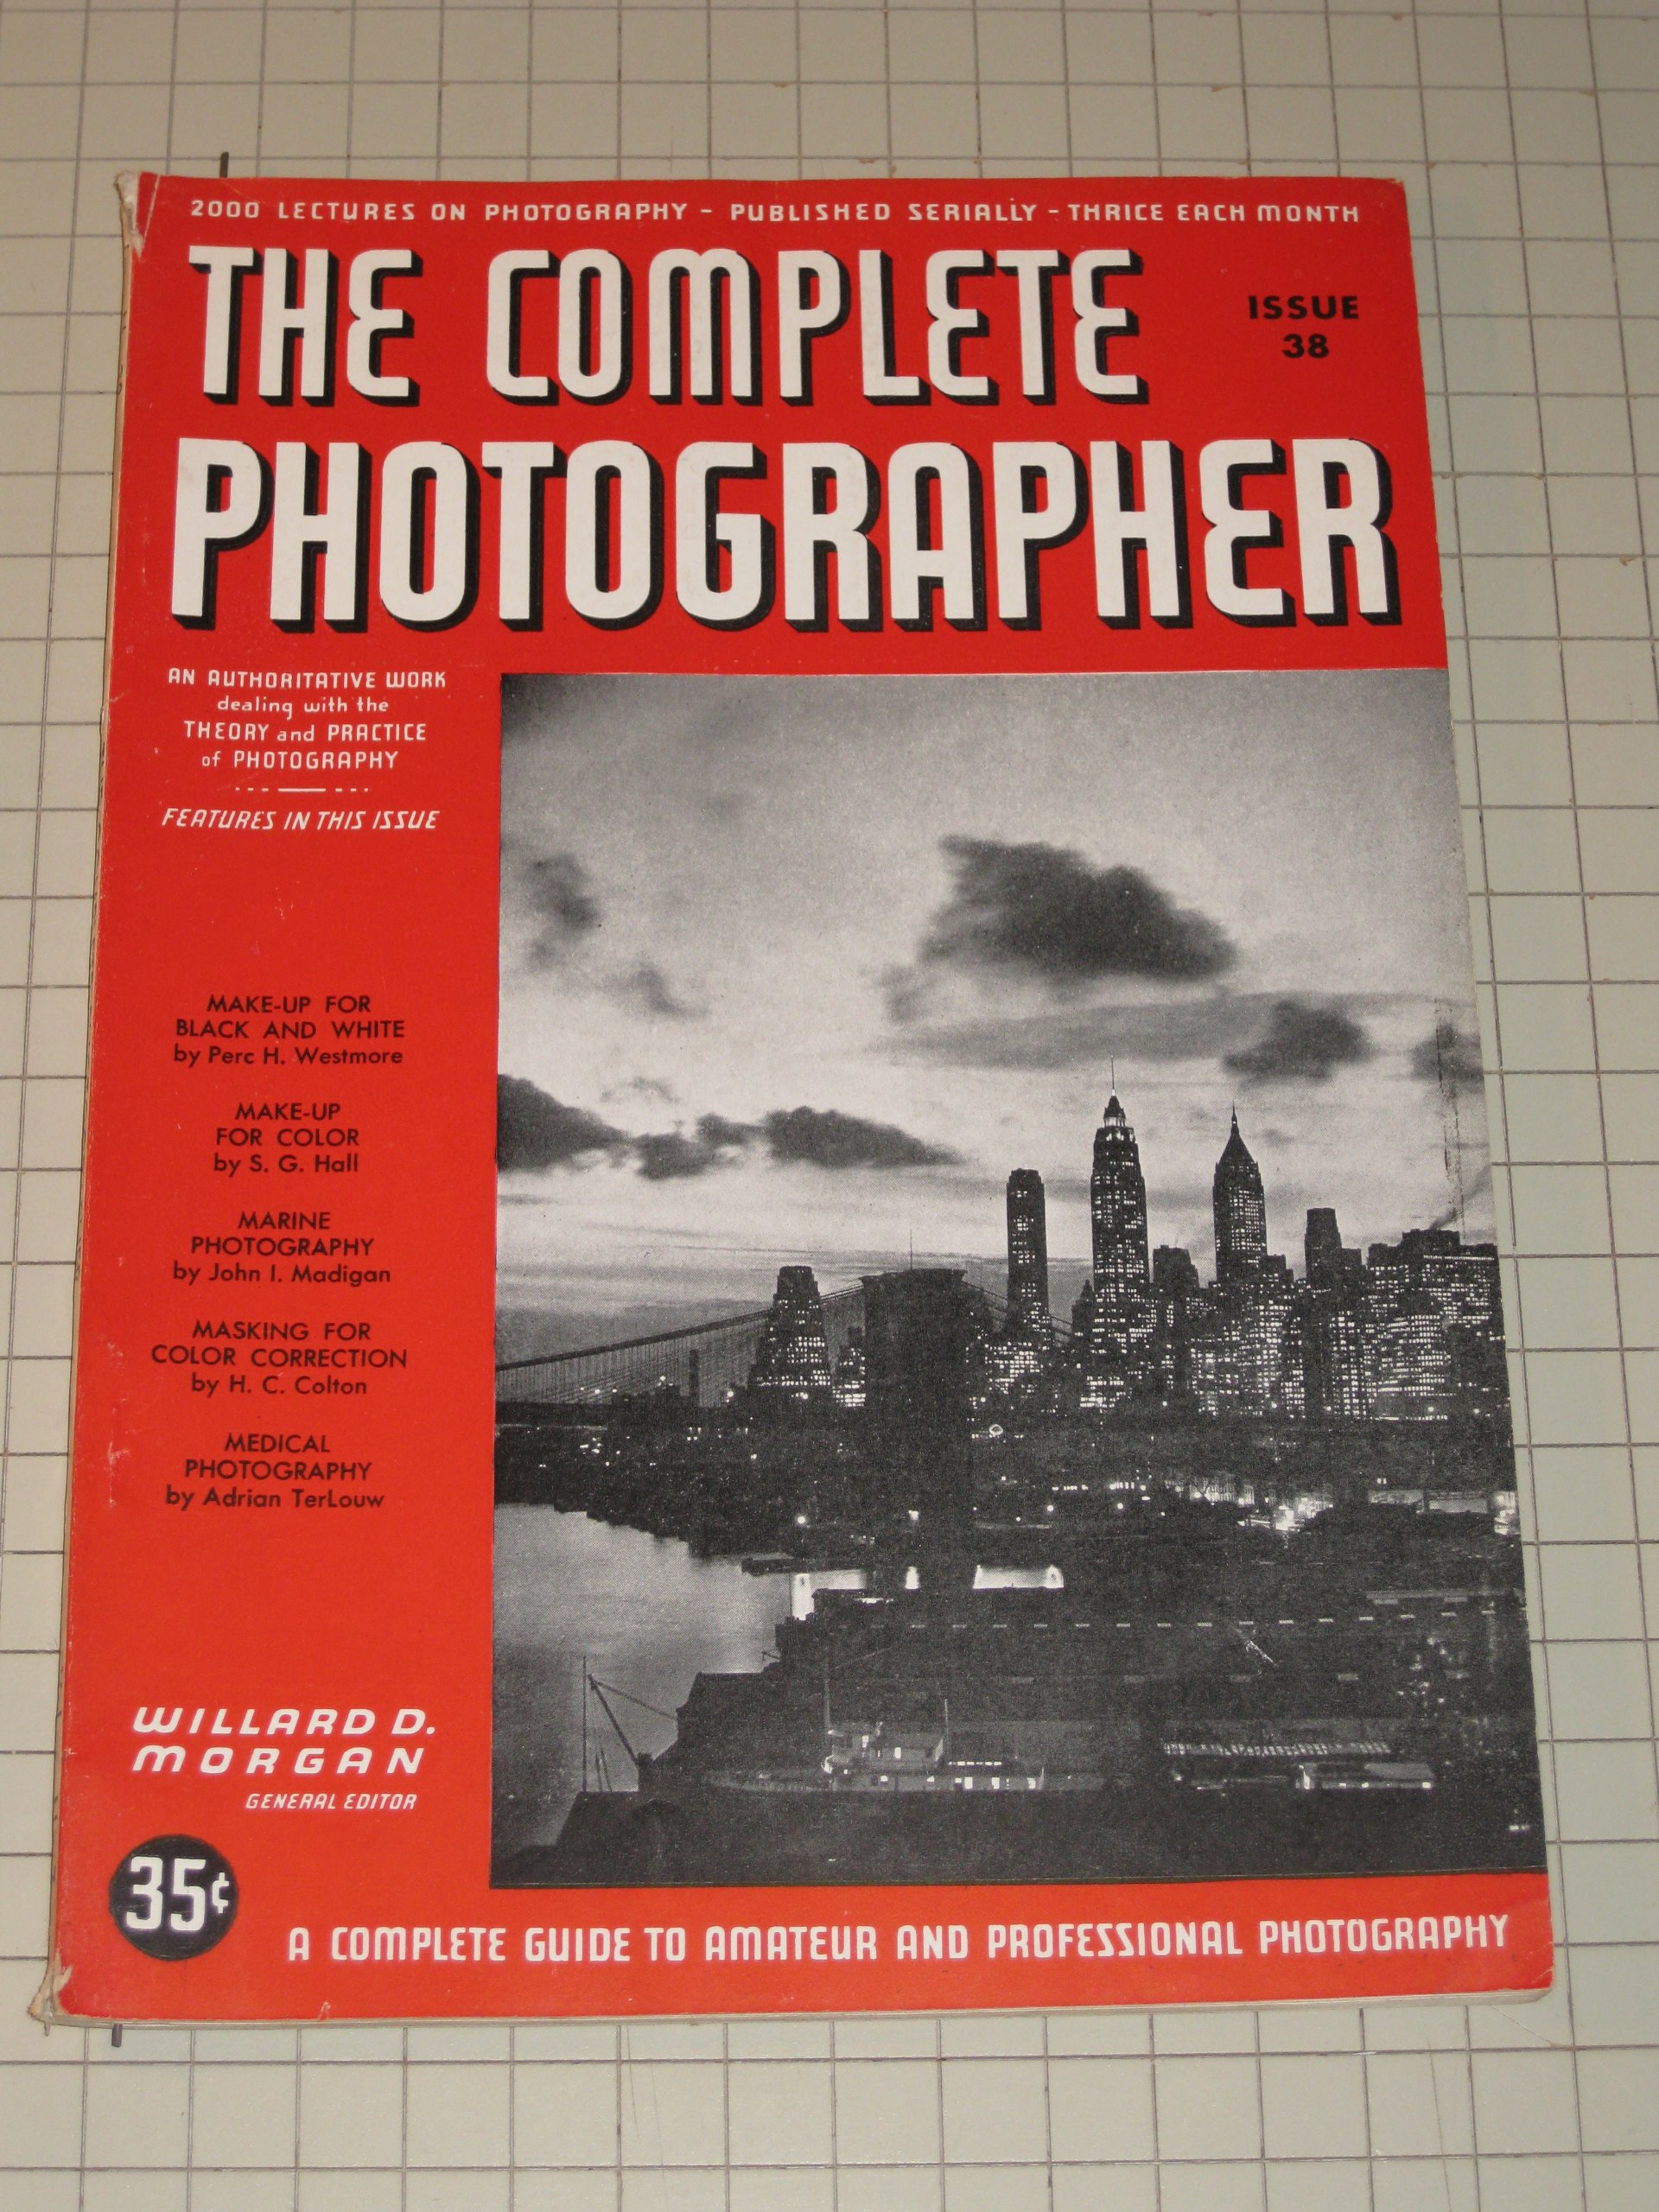 1942 The Complete Photographer: Make-Up For Color - Marine Photography - Medical Photography